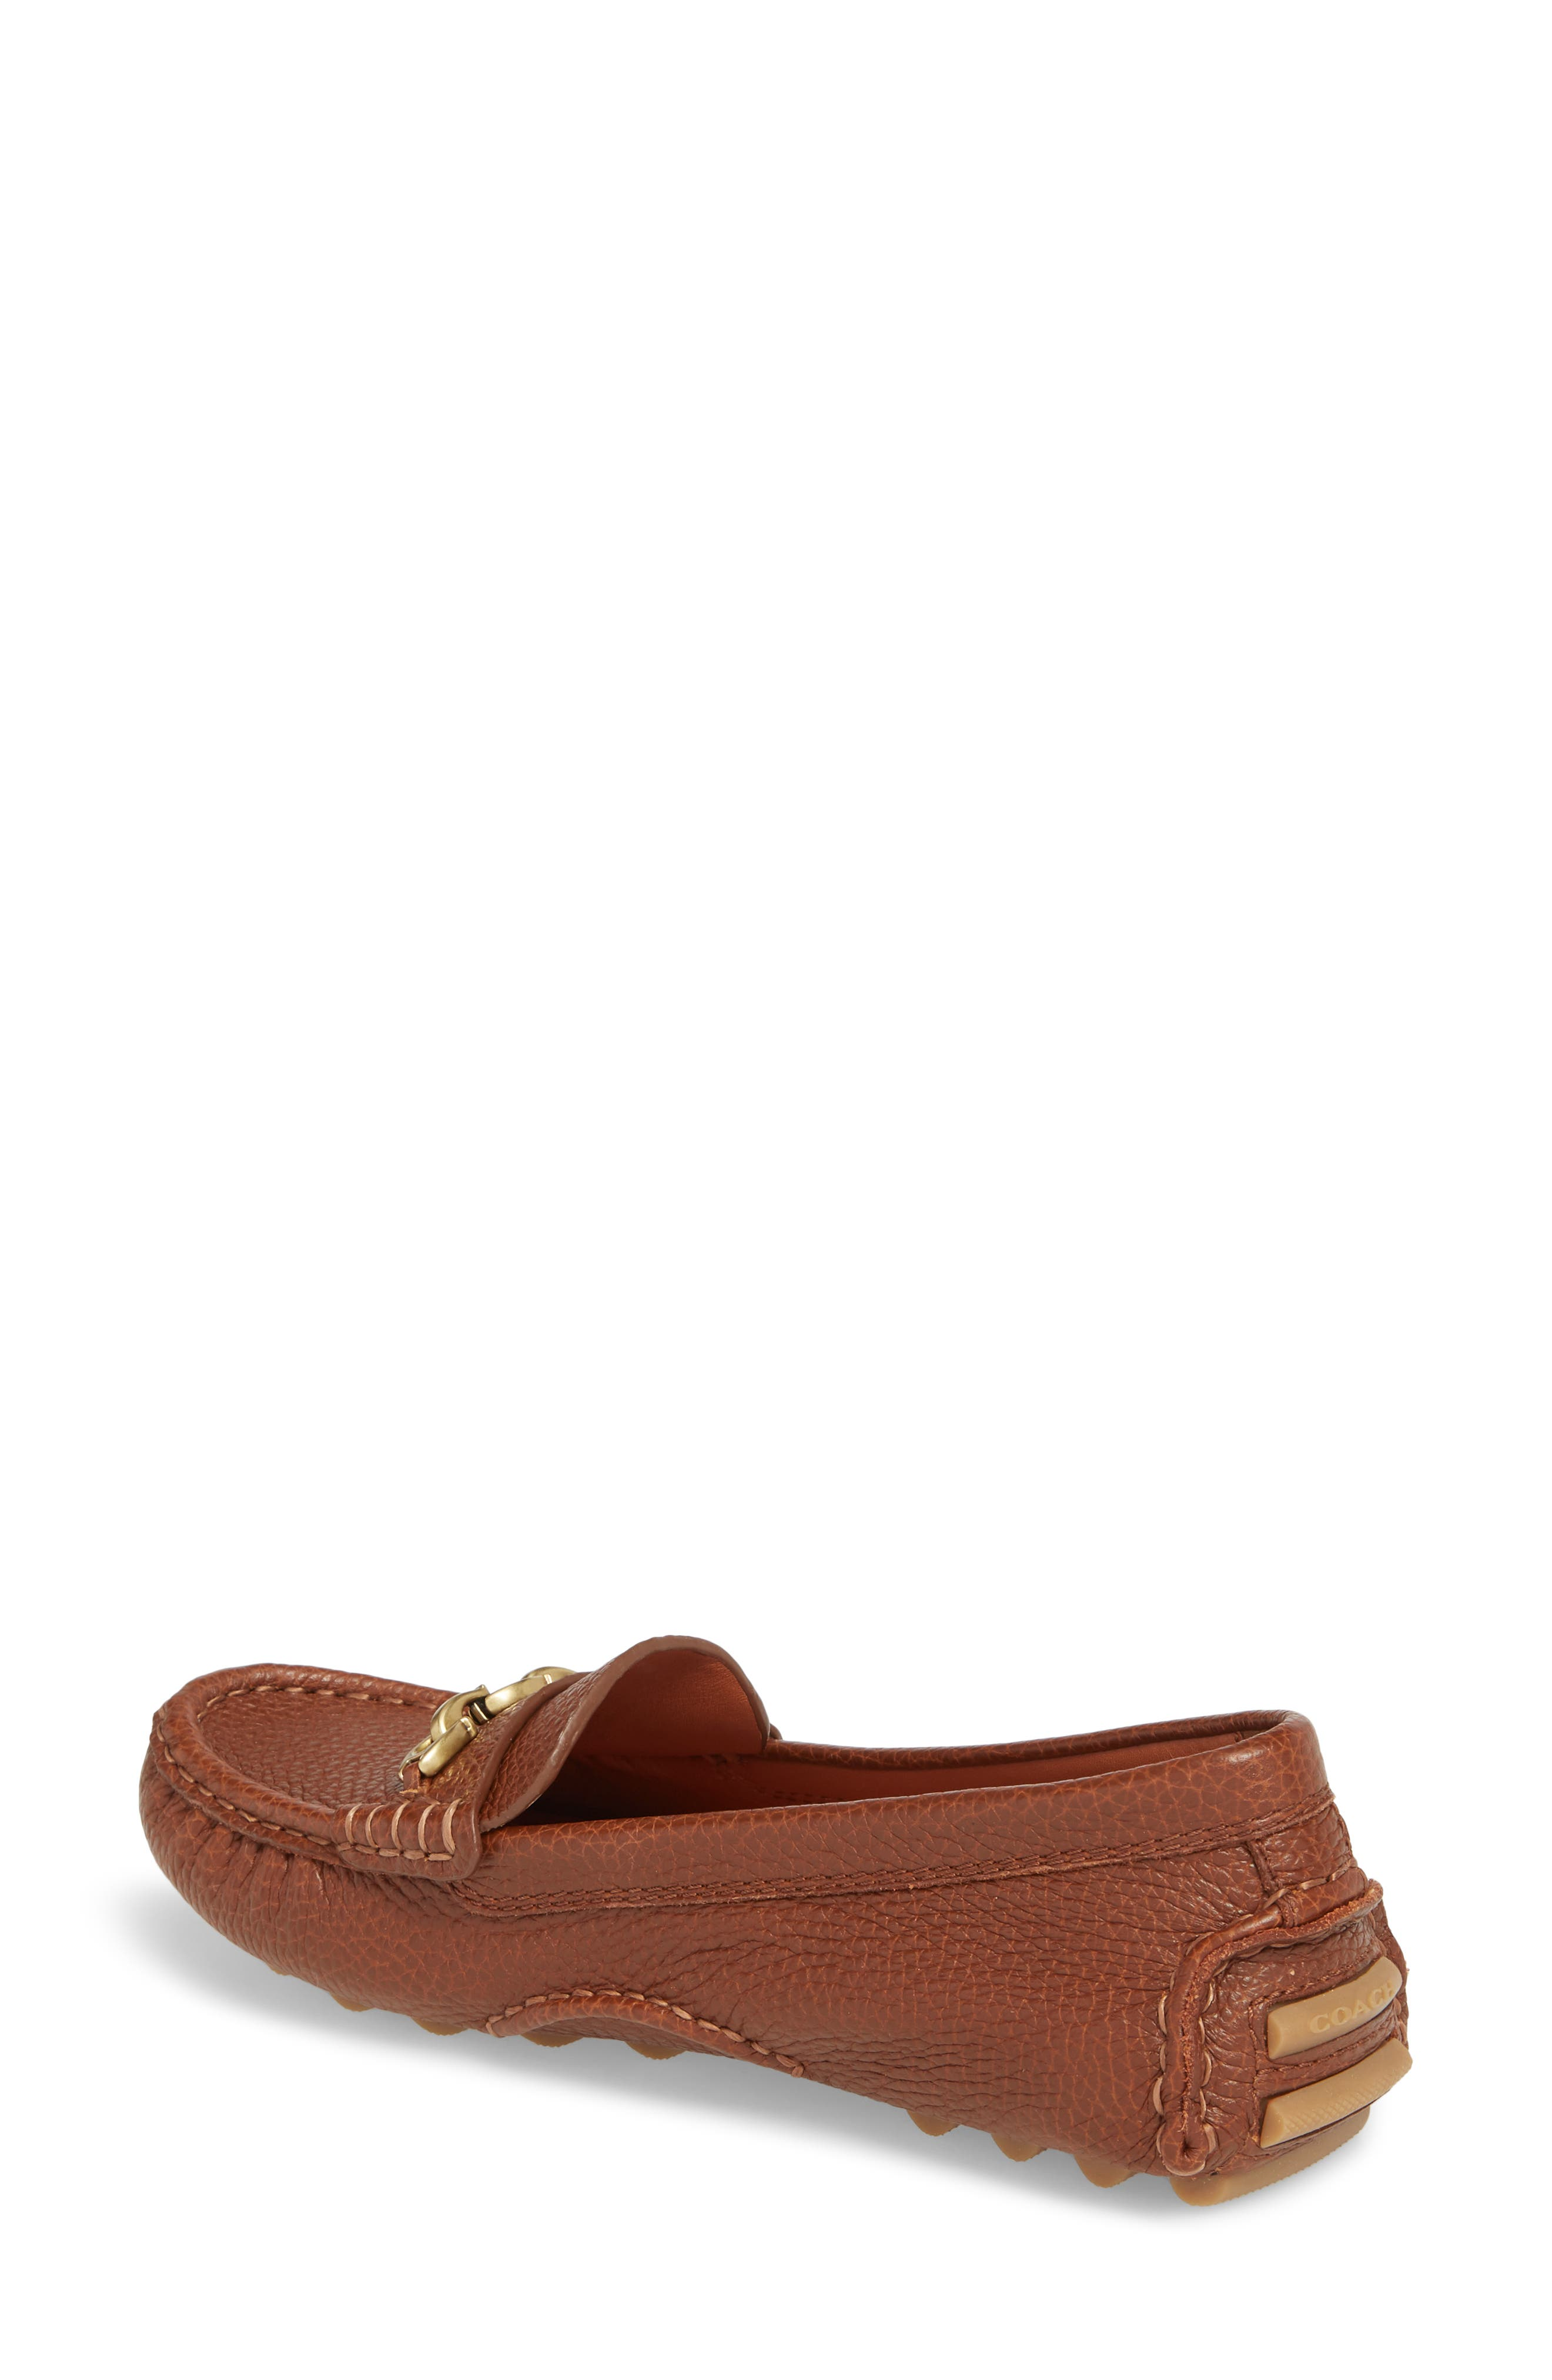 COACH, Crosby Driver Loafer, Alternate thumbnail 2, color, LION PEBBLED LEATHER